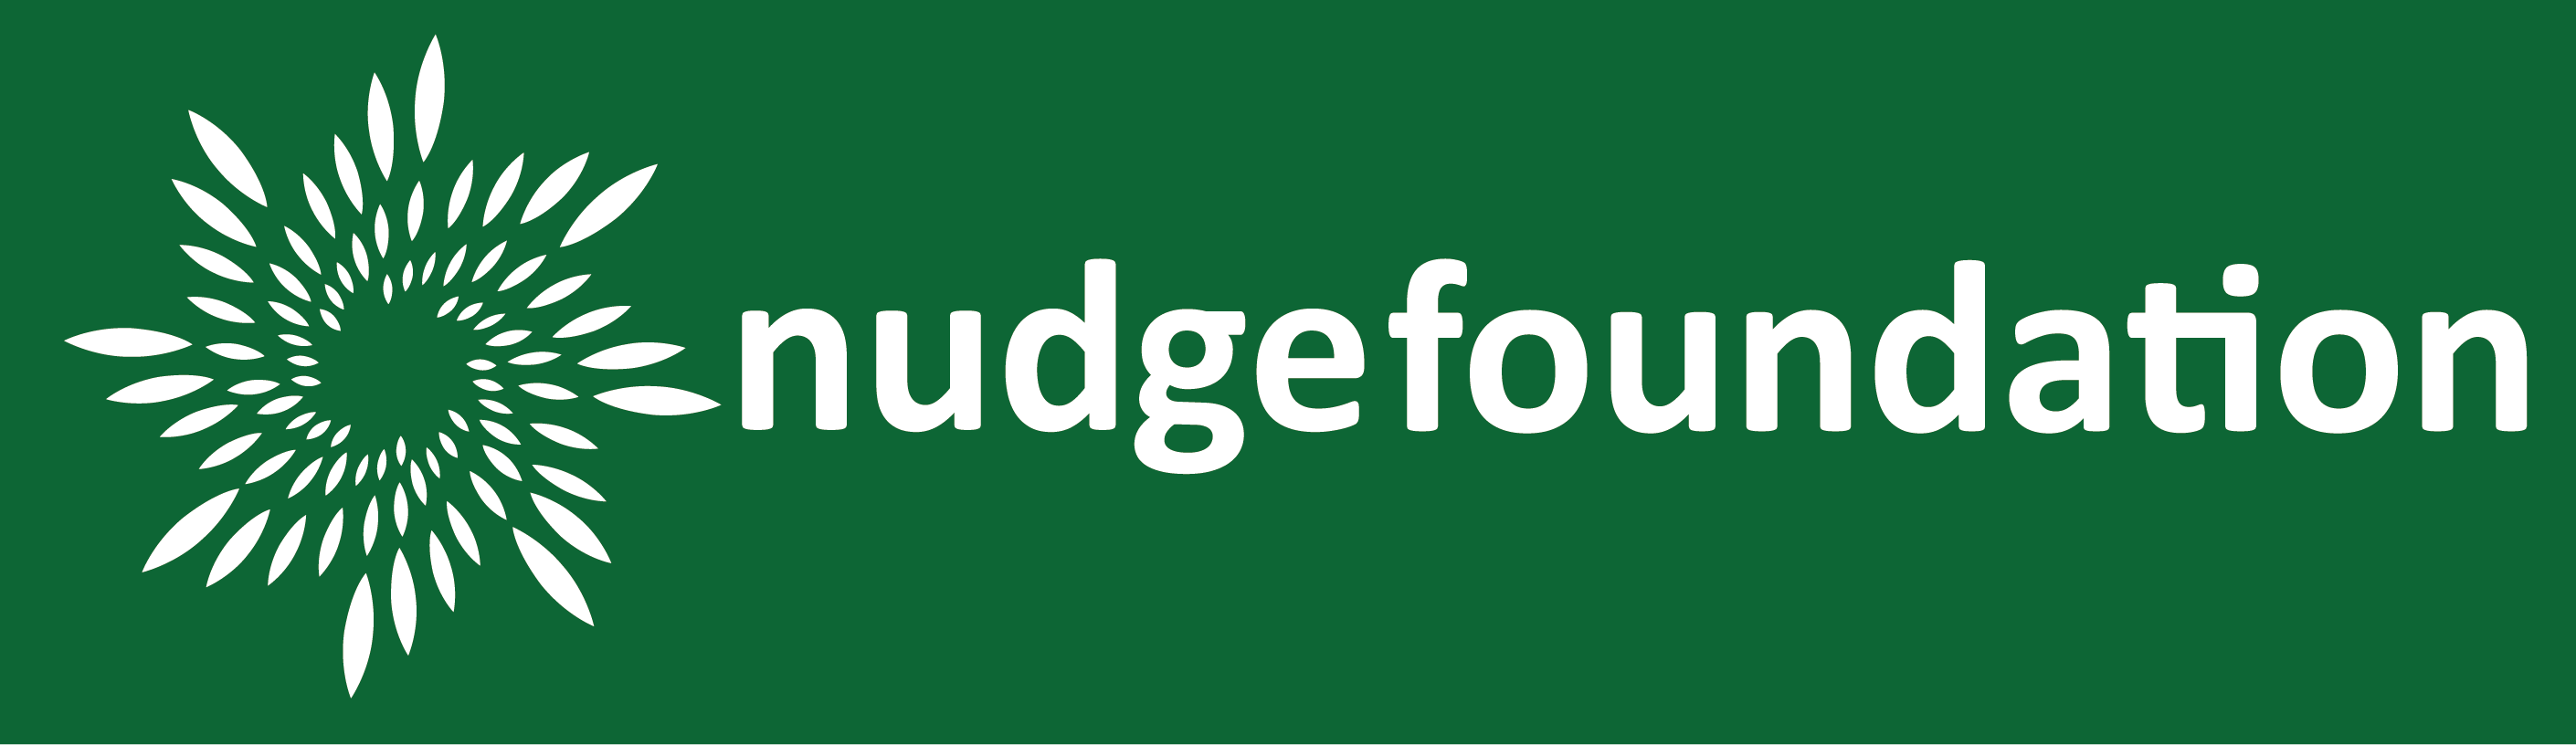 Nudge Foundation